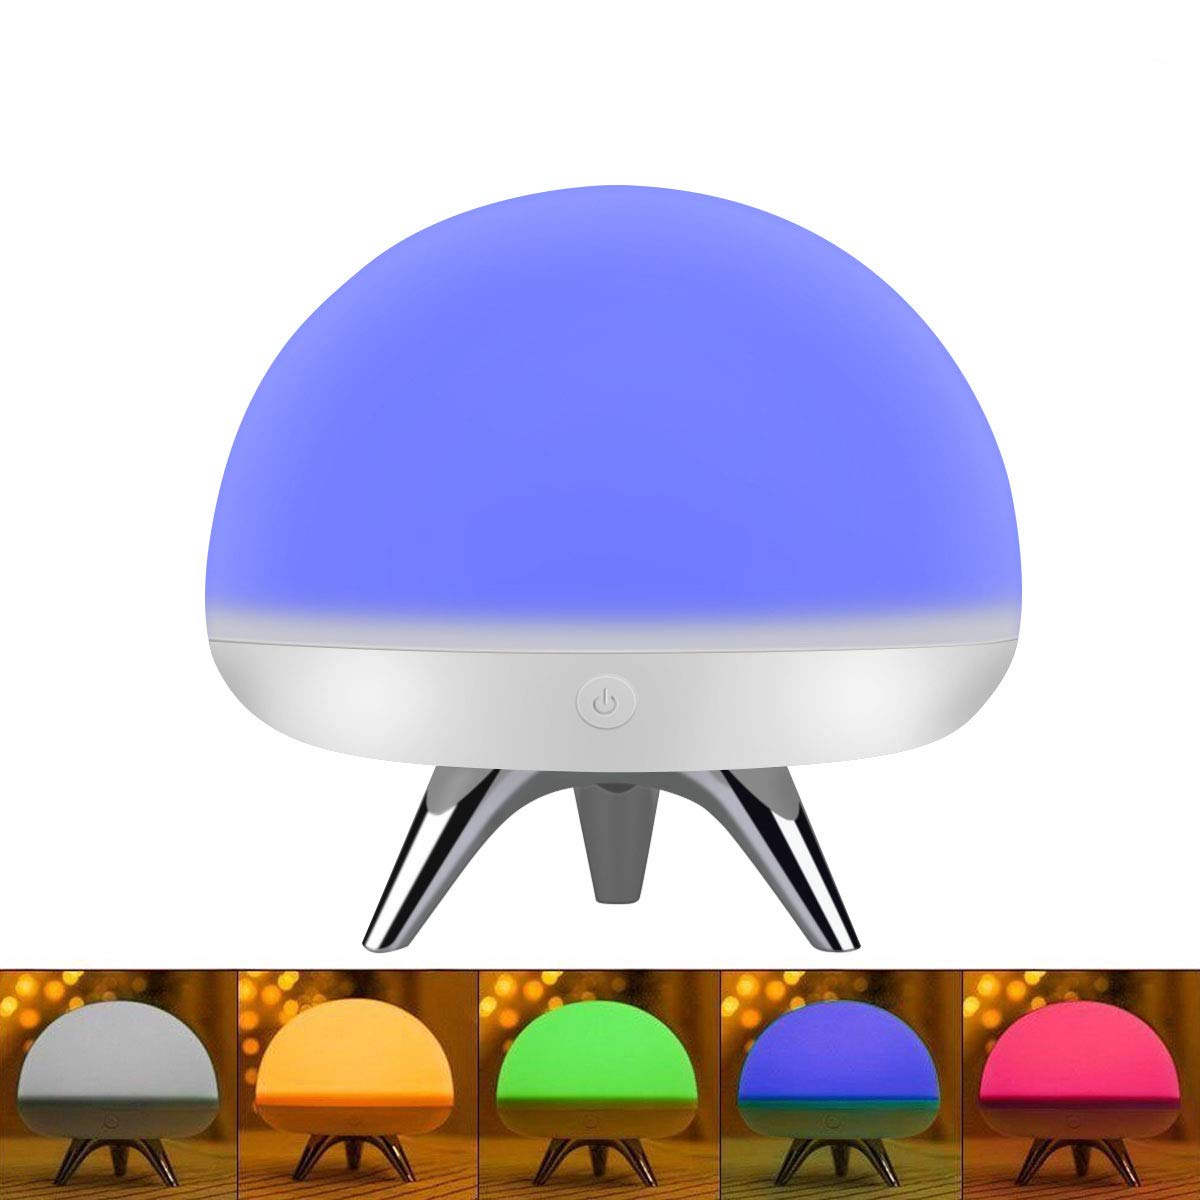 INTSUN Silicone Colorful Children Night Light USB Rechargeable Sensitive Tap Control Beside LED Table Lamp with Warm White, Single Color and 7-Color Breathing Mode for Baby Room, Bedroom, Nursery